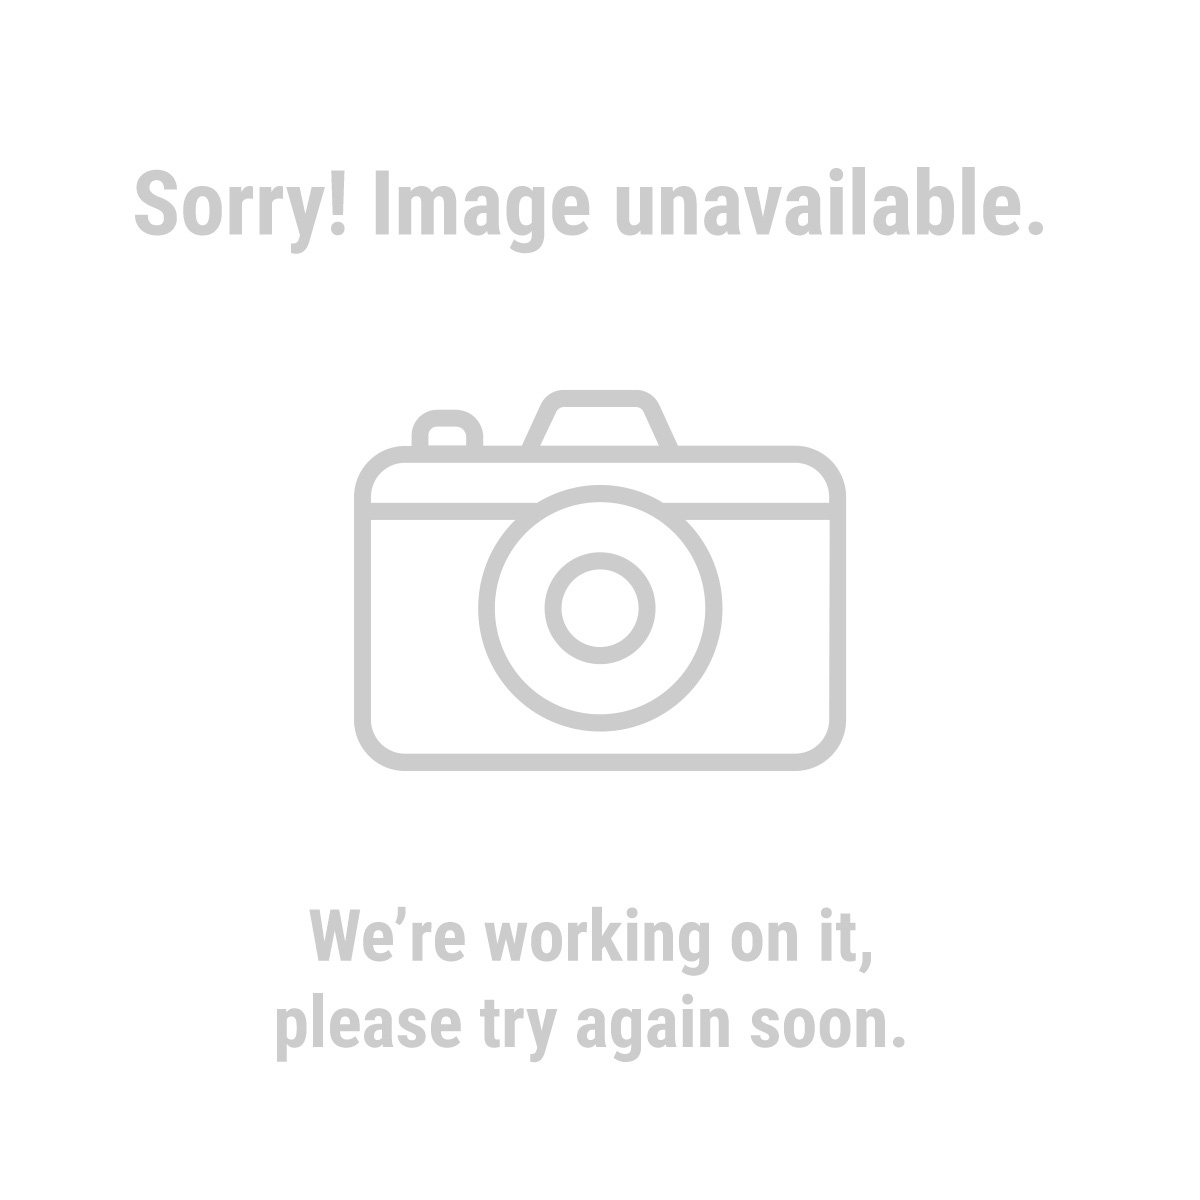 "Pittsburgh 67900 21 Piece High Visibility 3/8"" Drive SAE/Metric Socket Set"